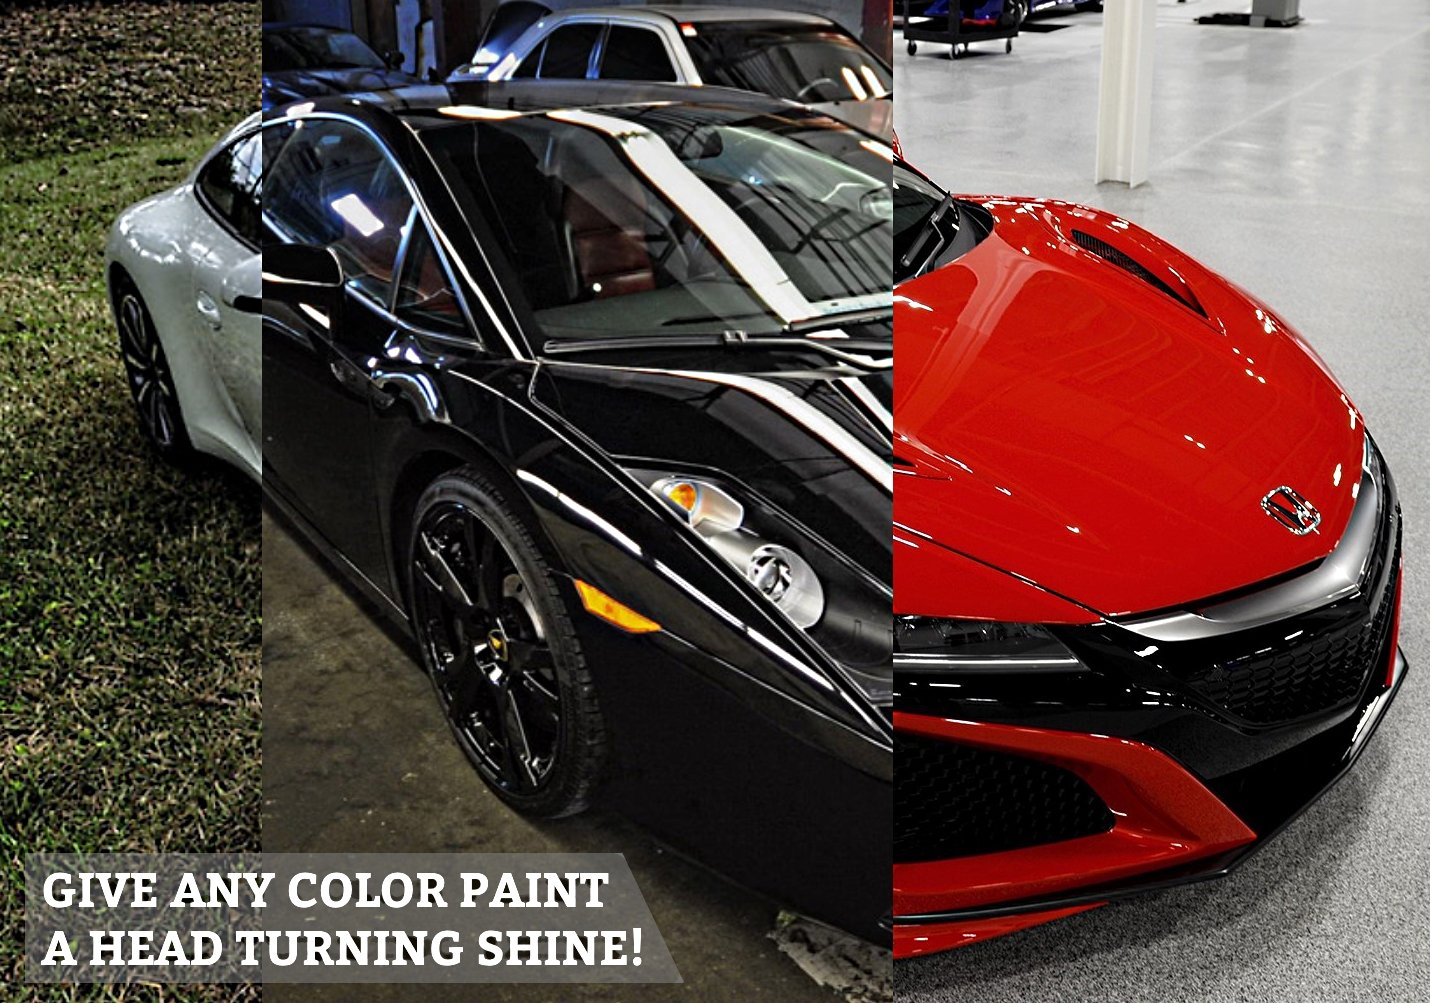 CarGuys Hybrid Wax Sealant - Top Coat Polish and Sealer - Infused with Liquid Carnauba for a Deep Hydrophobic Shine on All Types of Surfaces - 1 Gallon Bulk Refill by CarGuys (Image #6)